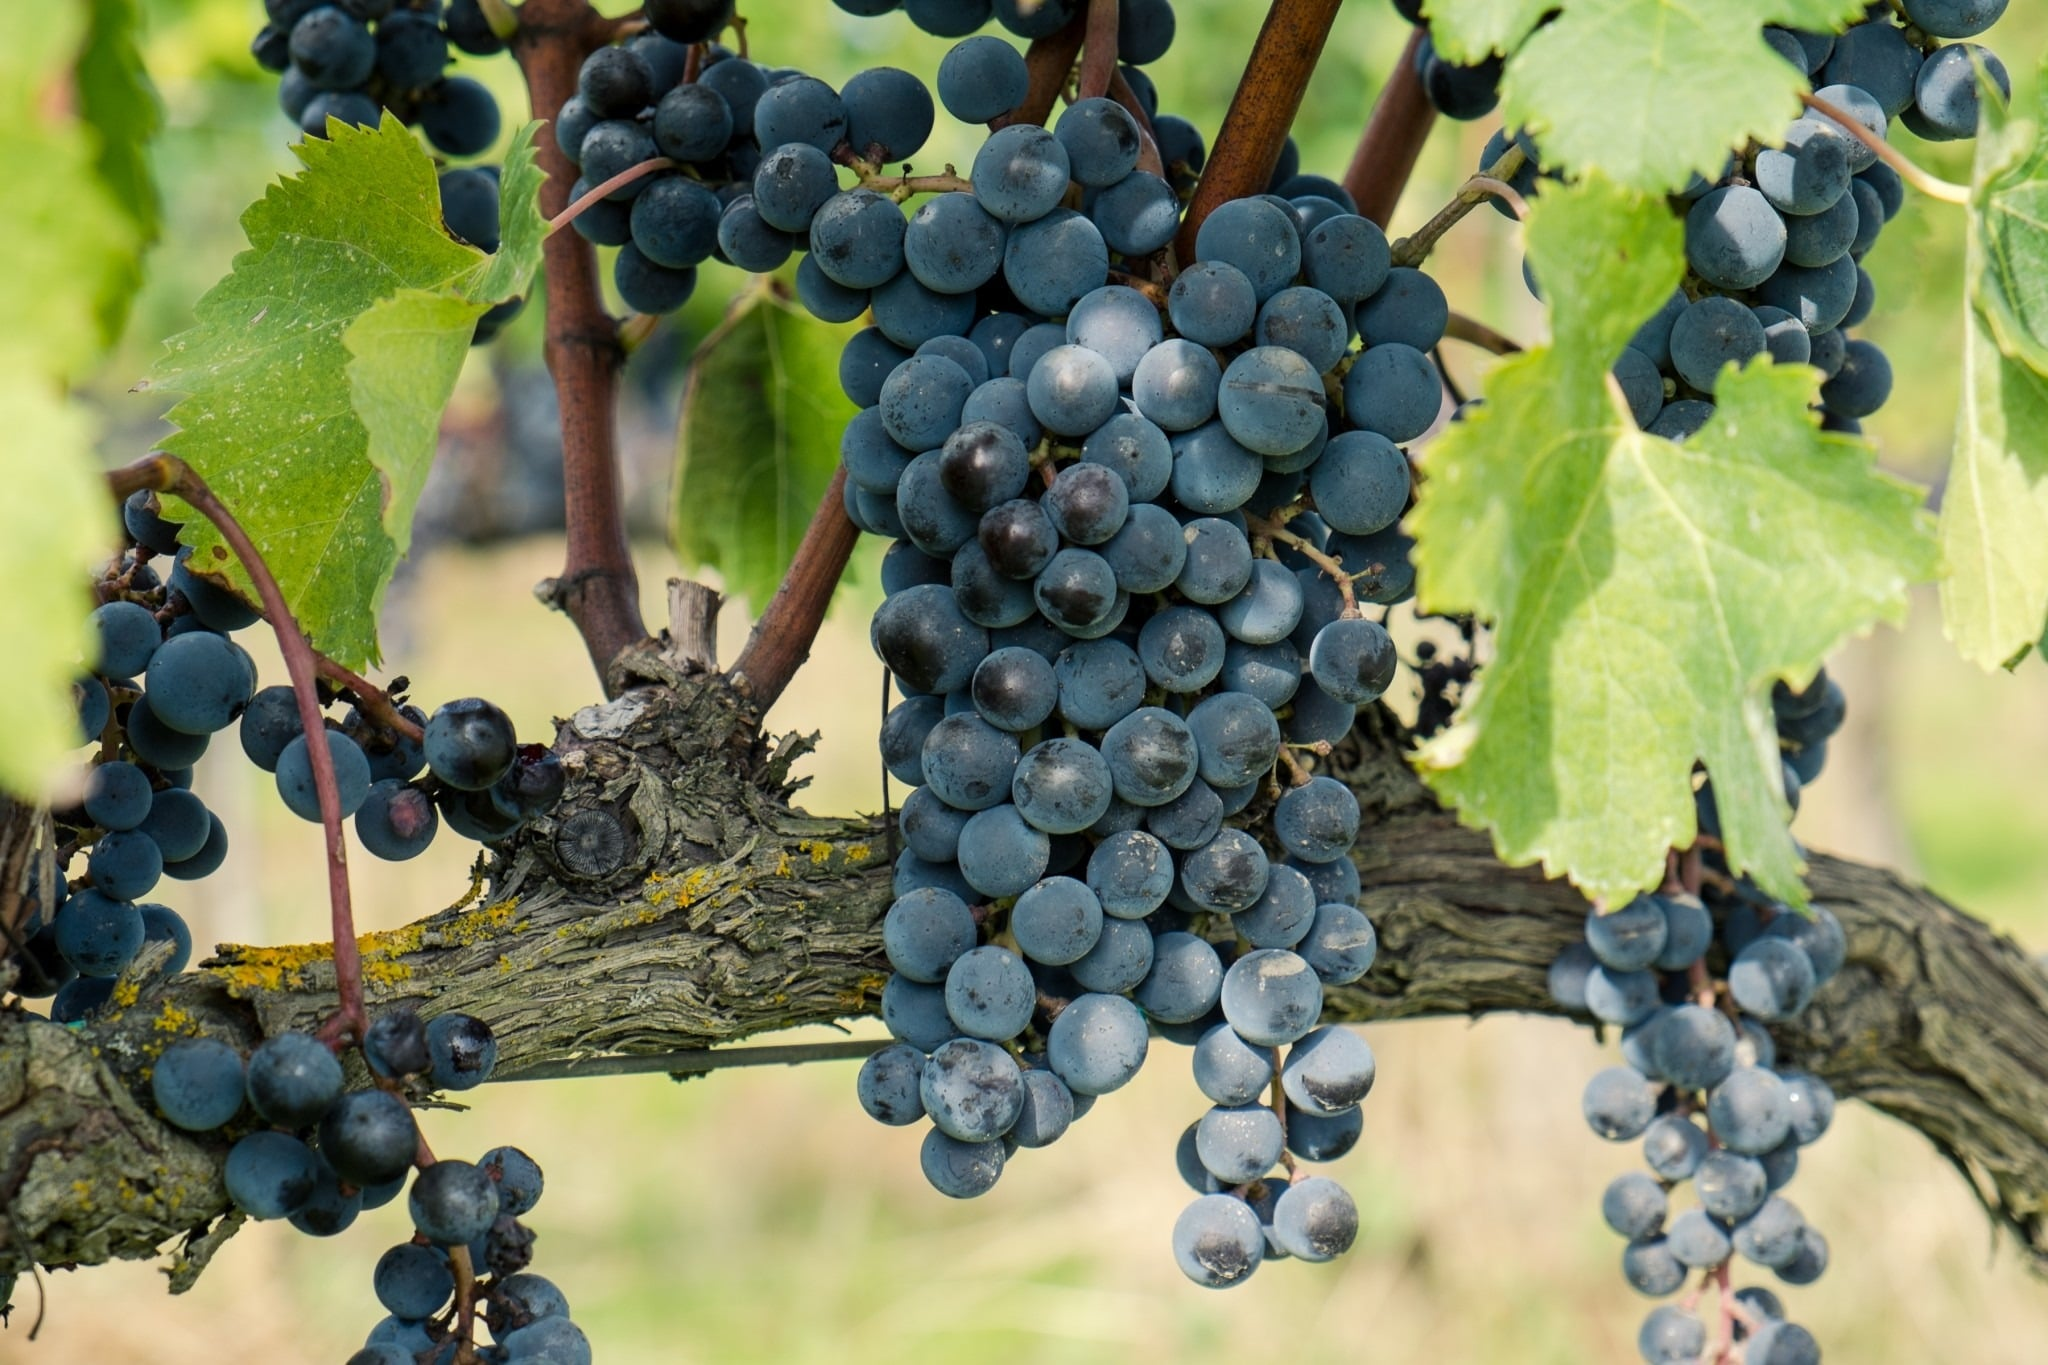 Shows a bunch of black grapes hanging of the vines